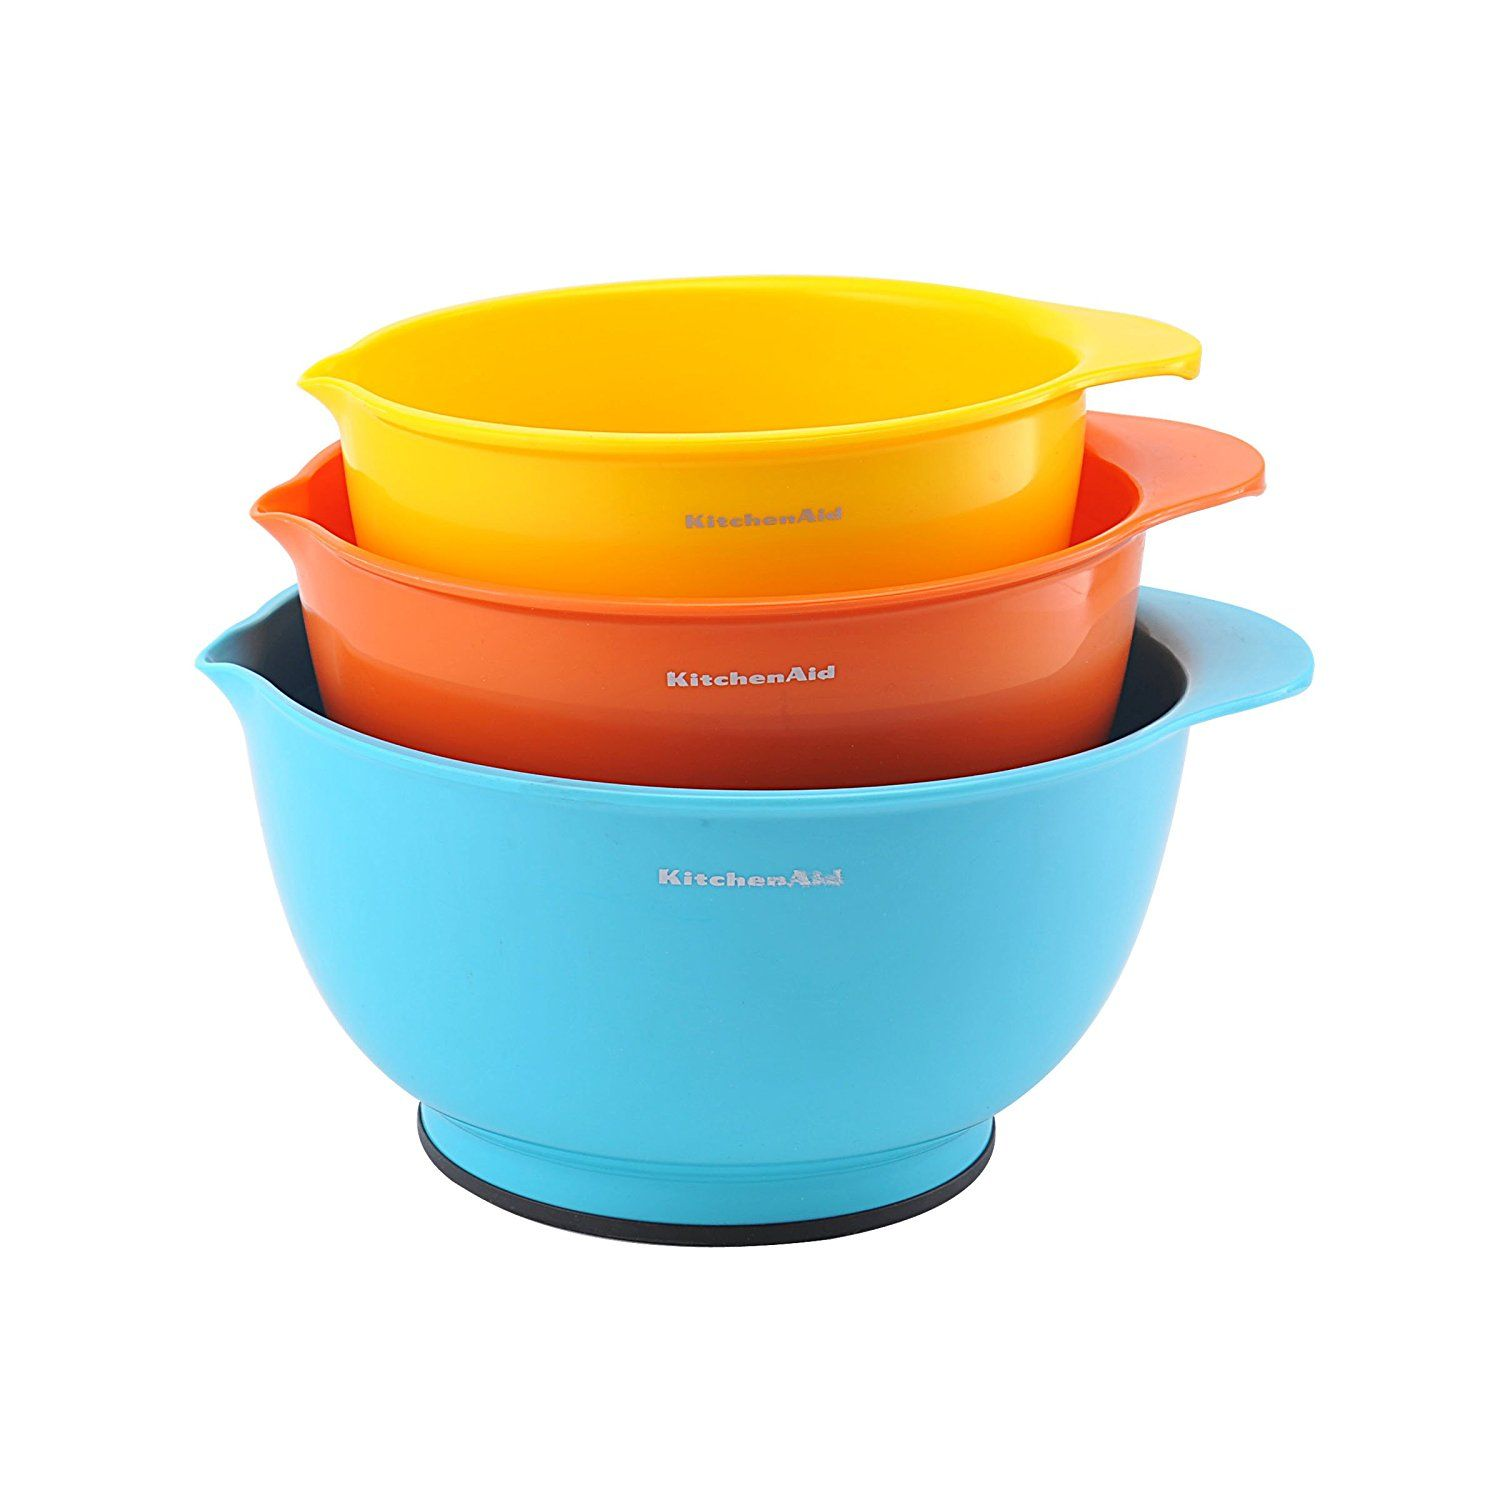 Kitchenaid Classic Mixing Bowls Assorted Colors Set Of 3 Trust Me This Is Great Mixing Bowls Baking Kitchenaid Classic Mixing Bowls Kitchen Aid